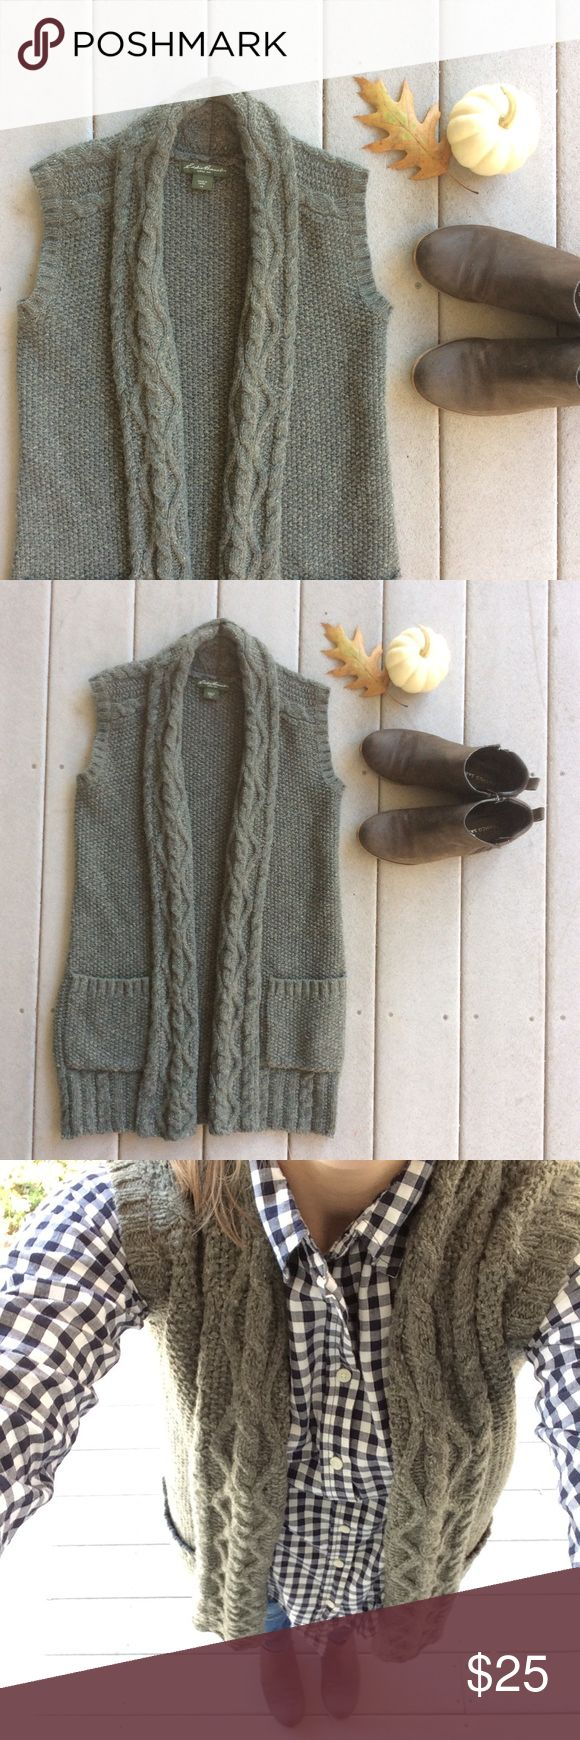 """🆕LISTING {Eddie Bauer} Olive Green Knit Vest 🍂 Wear this cozy knit vest over your favorite buttondown for a lovely fall look! Great quality piece to add to your closet. In excellent condition. 29"""" Long. 77% wool, 23% nylon. Hand wash. Eddie Bauer Jackets & Coats Vests"""